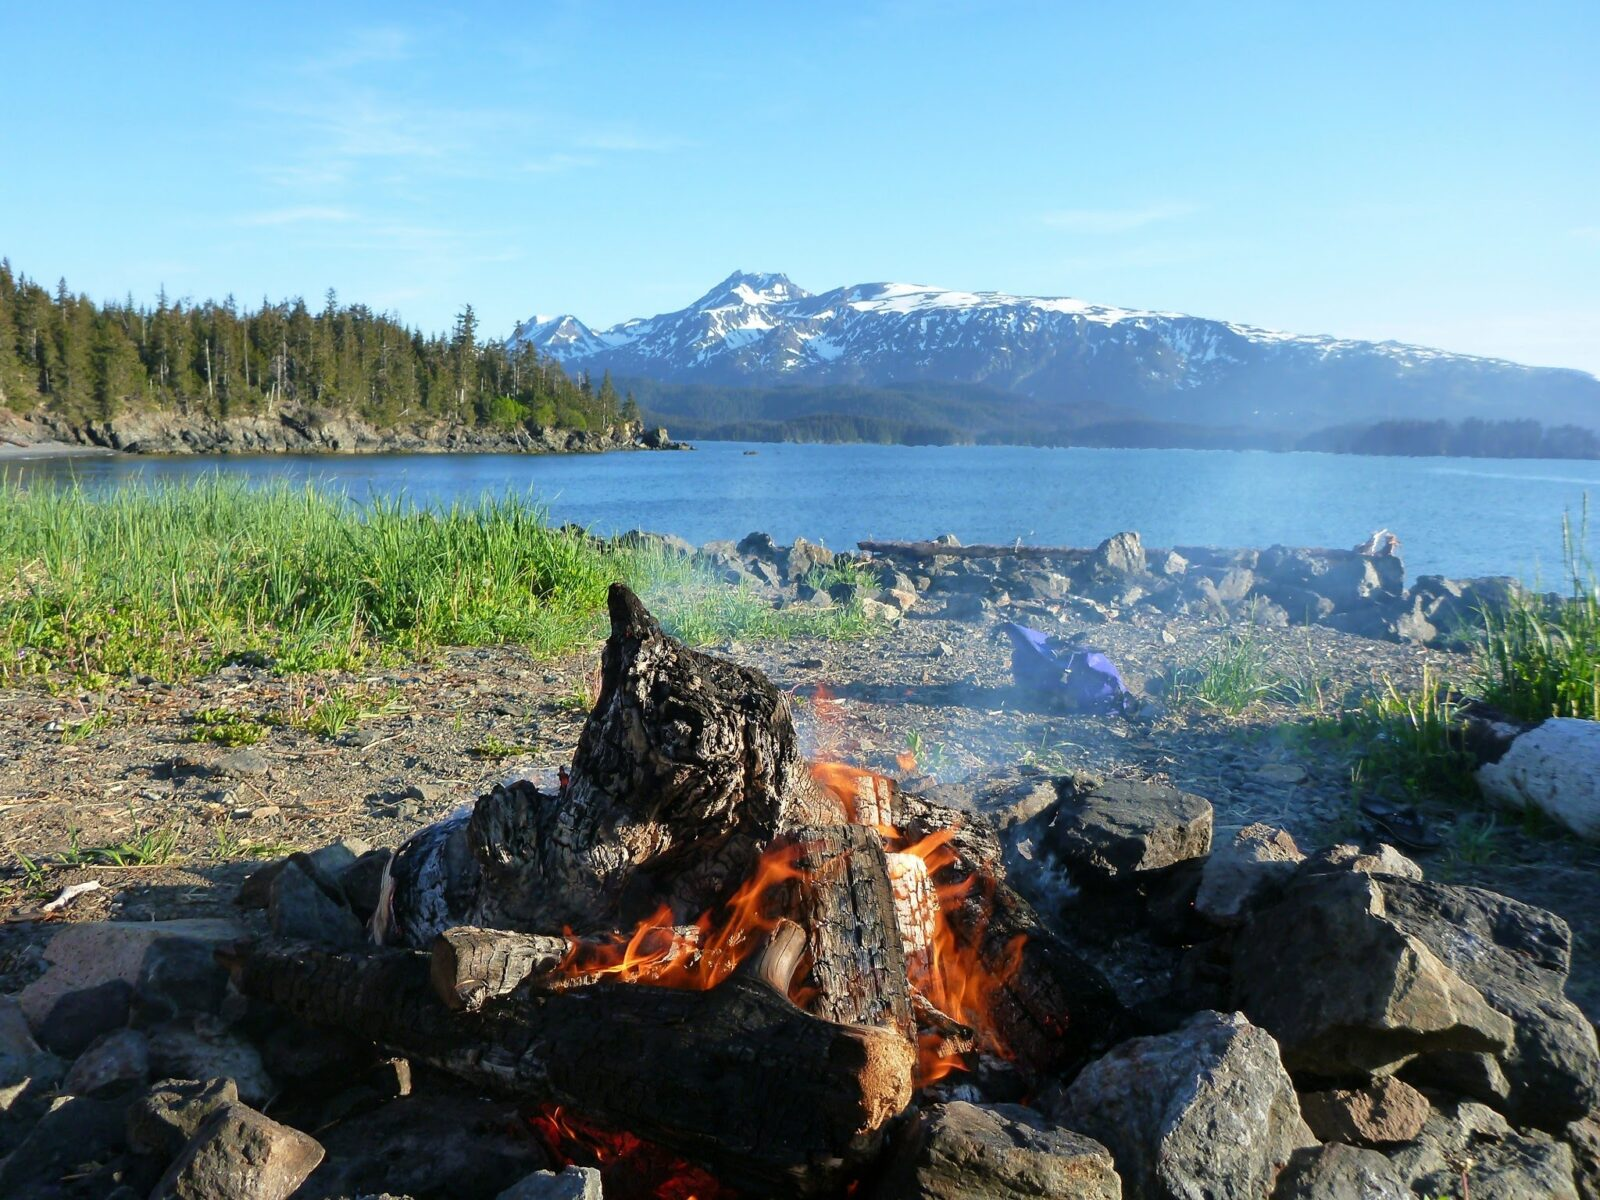 A campfire in the foreground on a rocky and grassy beach along a small bay. Across the bay there are forested hillsides and higher mountains with lingering snow